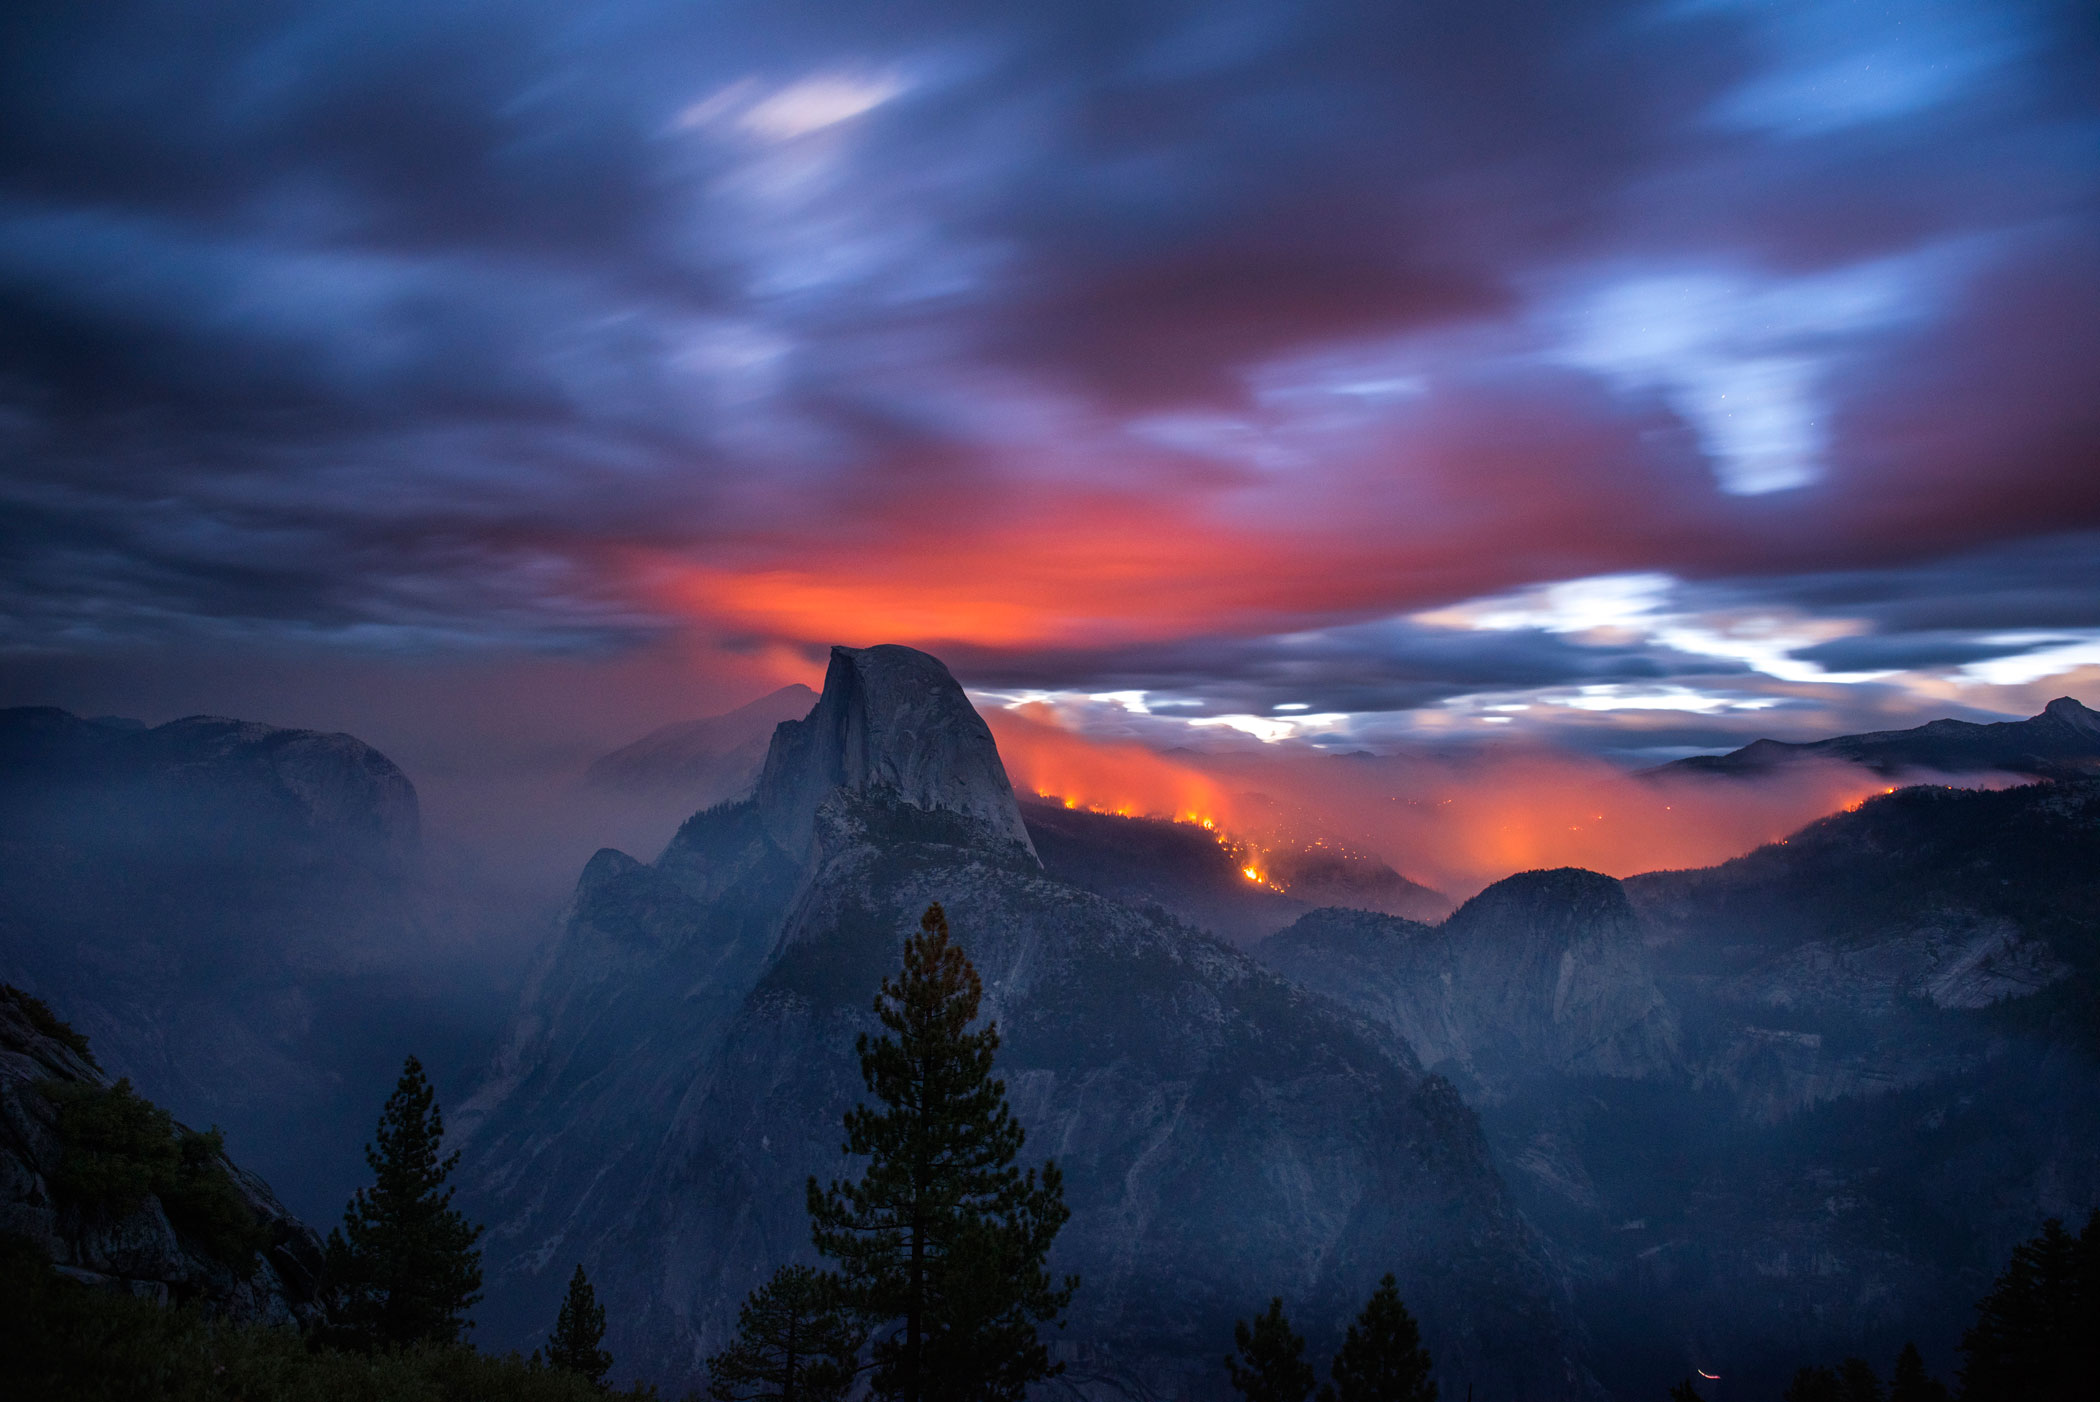 The Meadow Fire burns at dawn near Half Dome in Yosemite National Park early Monday September 8, 2014. As of Wednesday the fire had burned over 4,500 acres and was 10% contained.